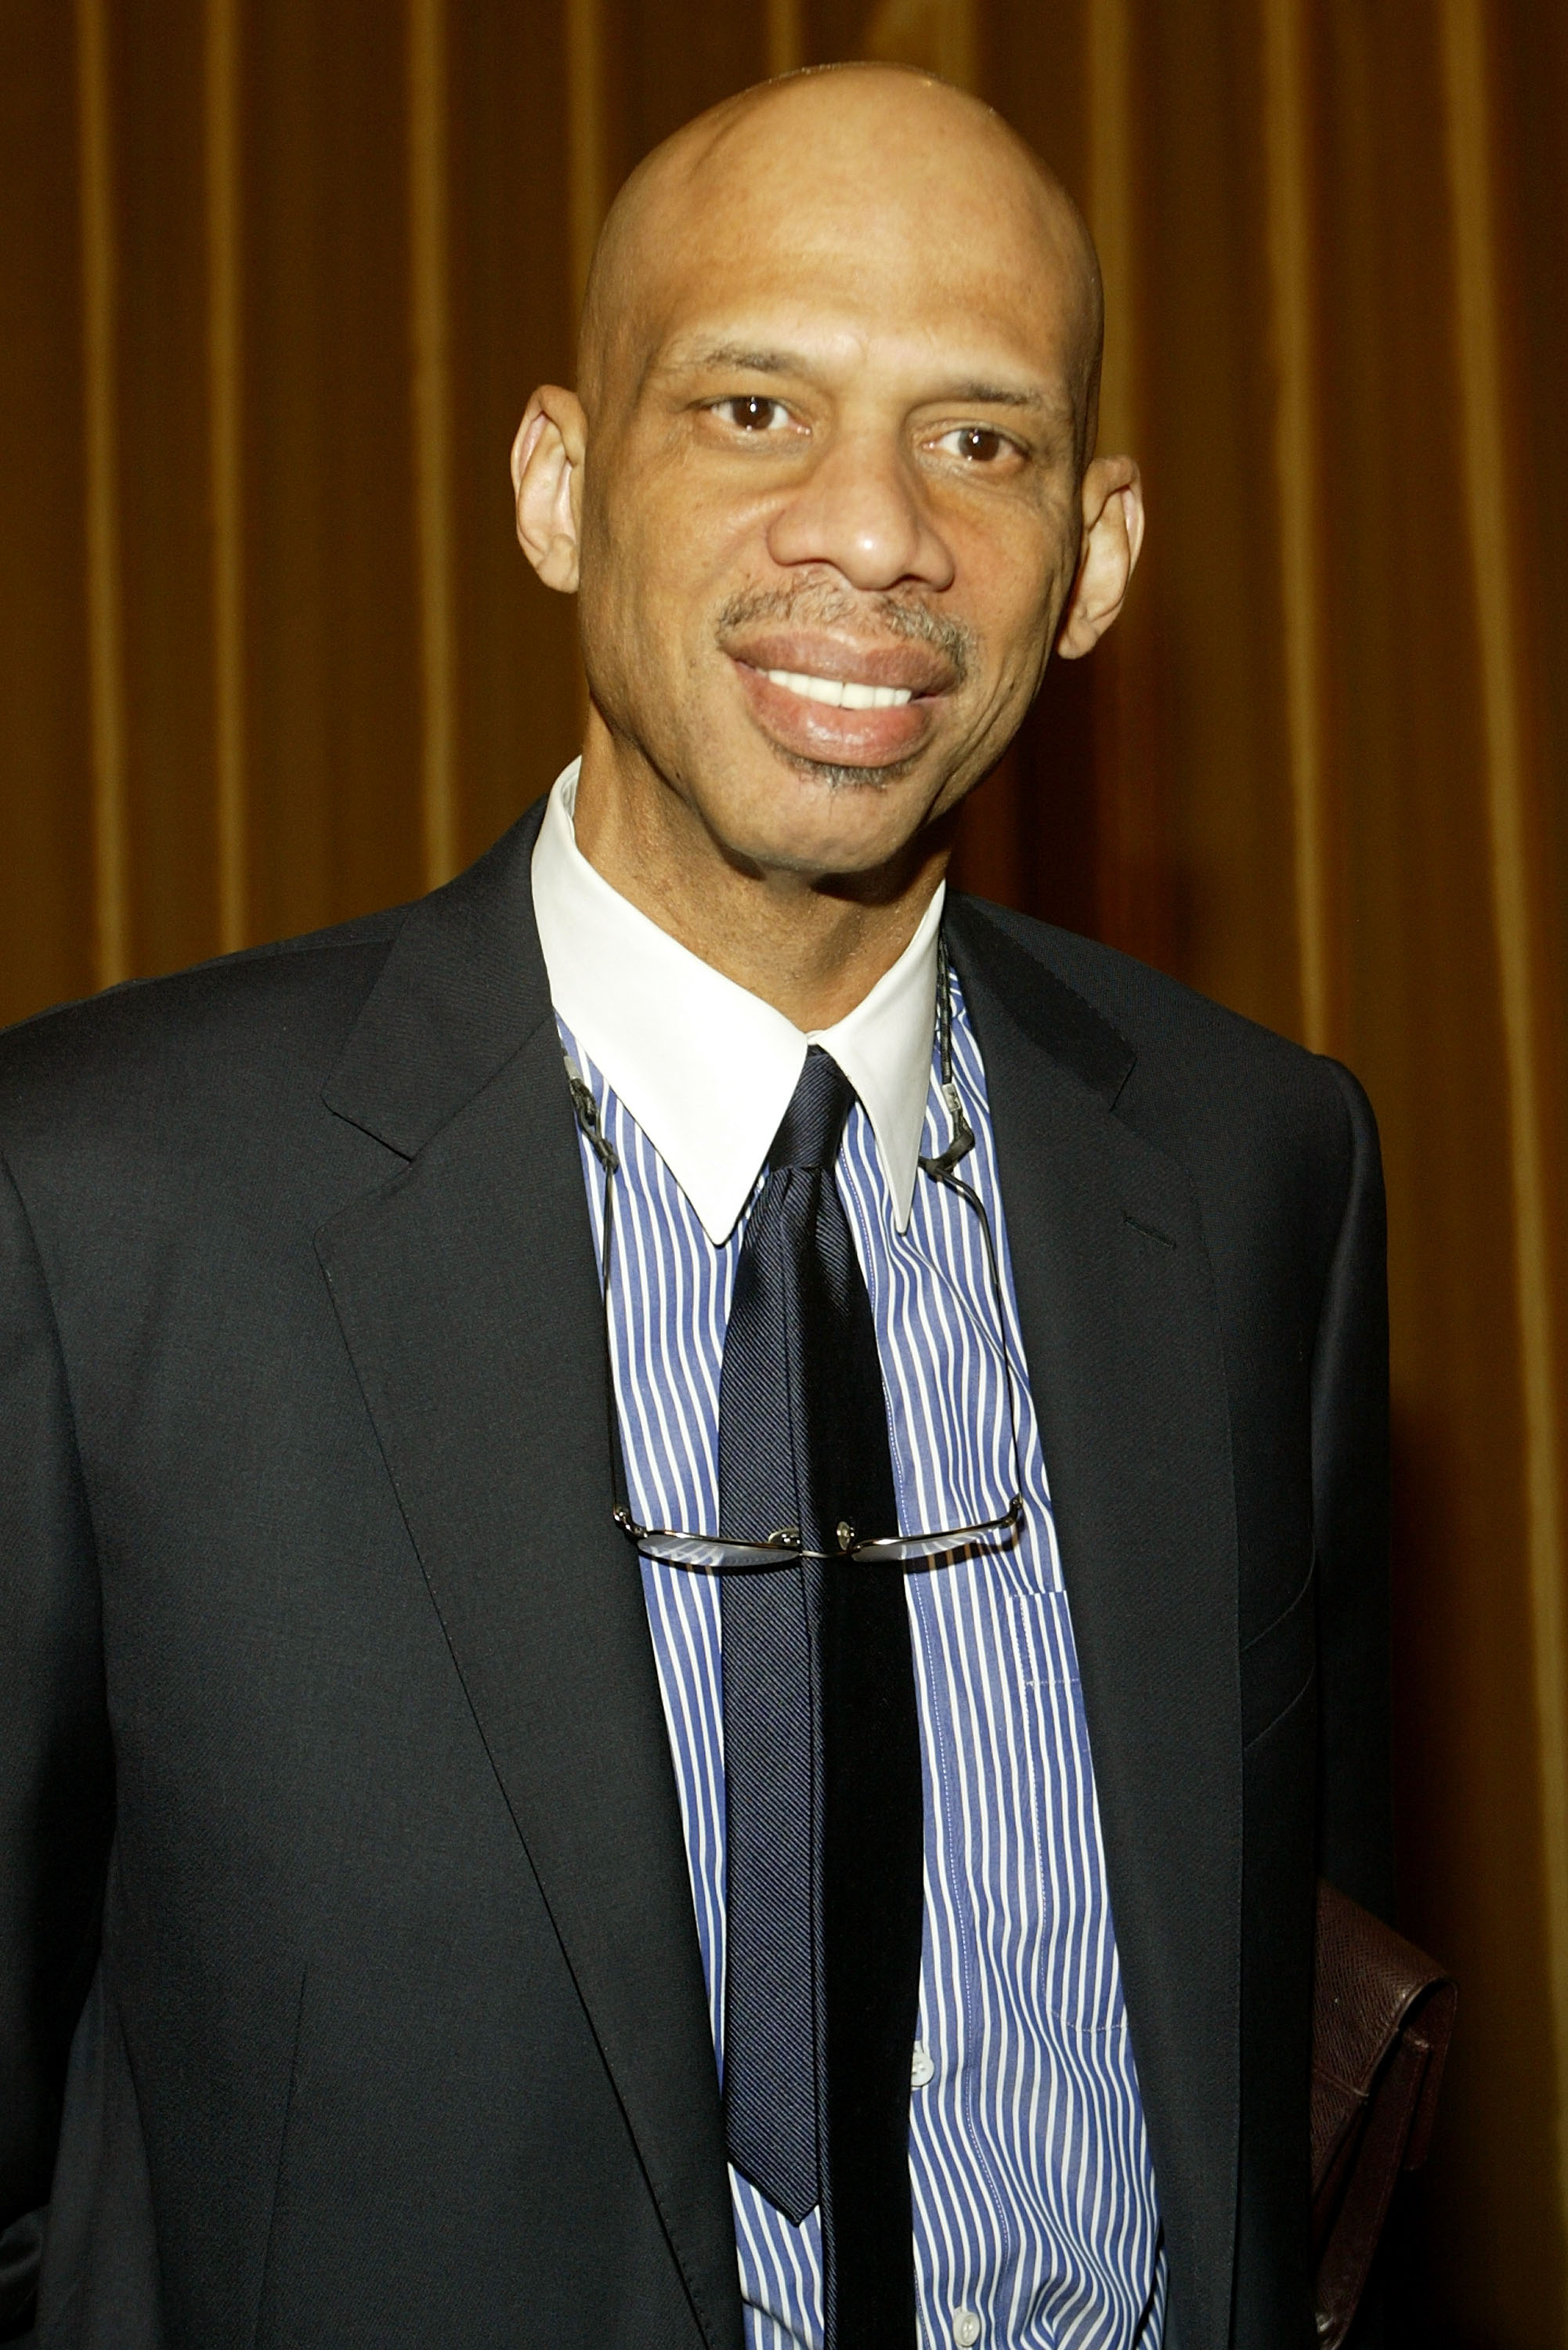 BEVERLY HILLS, CA - JANUARY 29:  Former NBA star Kareem Abdul-Jabbarr arrives at the 57th Annual DGA Awards Dinner at the Beverly Hilton Hotel on January 29, 2005 in Beverly Hills, California.  (Photo by Michael Buckner/Getty Images)